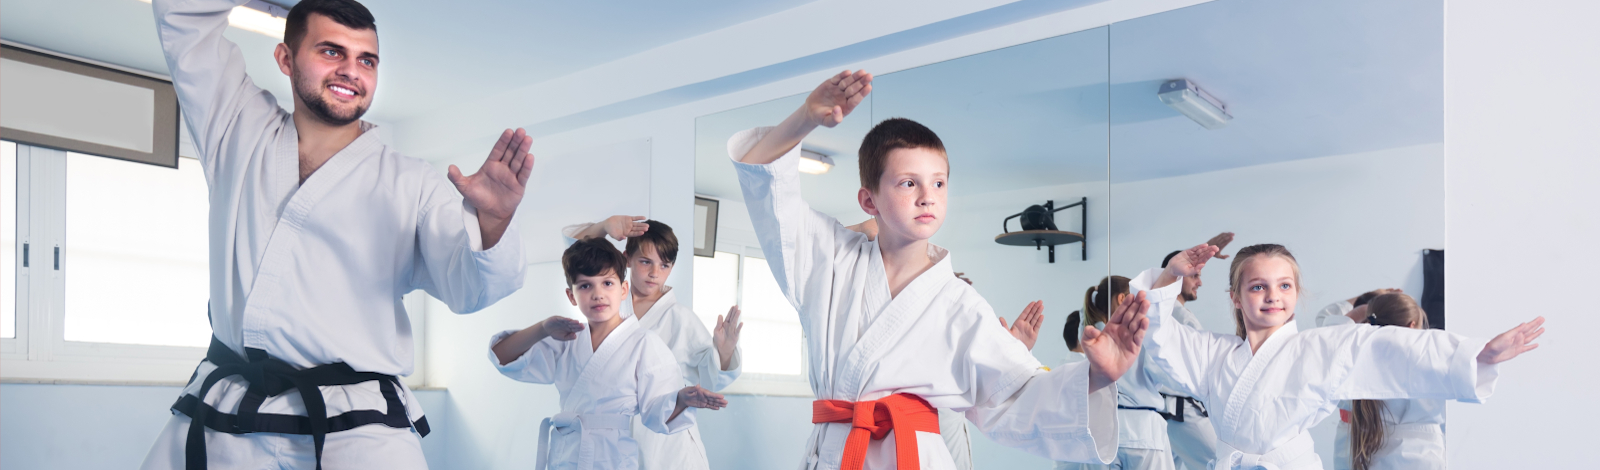 Karate classroom with teacher and students